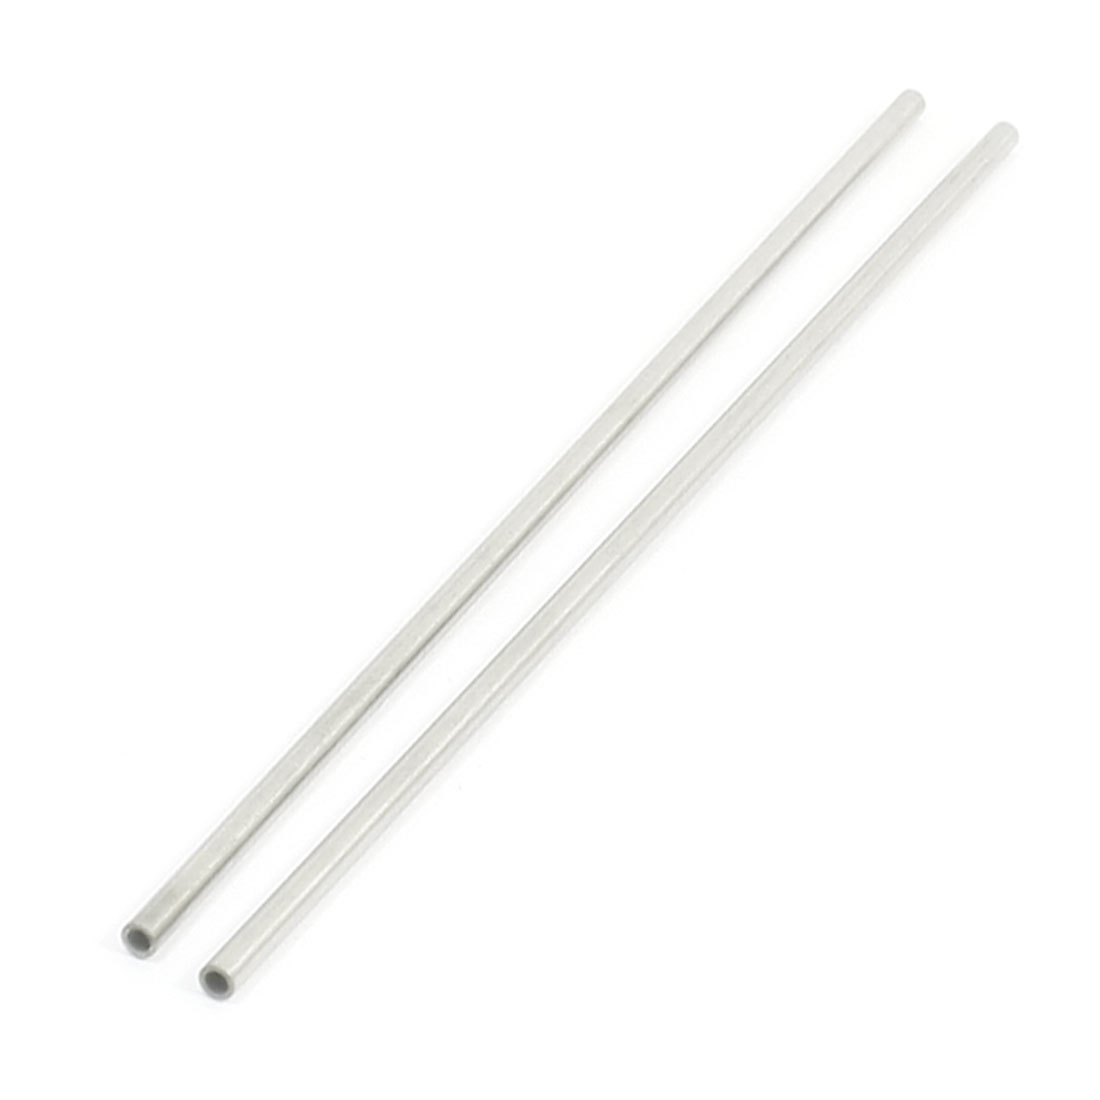 "2PCS 160mm Long 3mm Dia 0.02"" Wall Stainless Steel Welded Round Tubing"